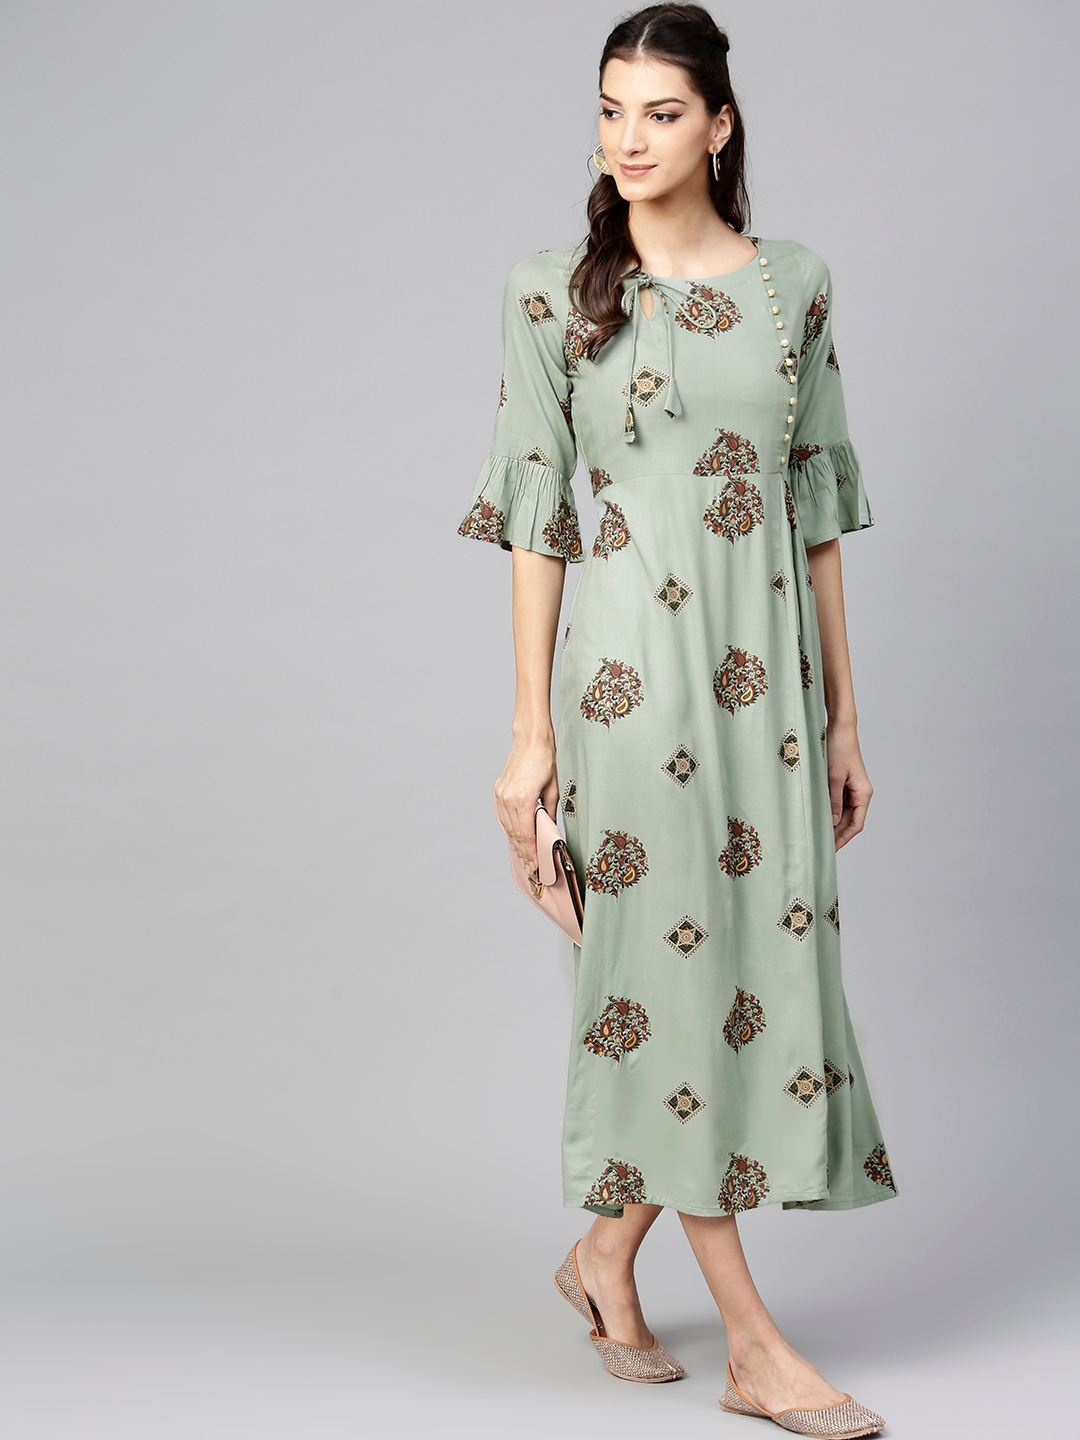 7d86a5134c Buy Libas Women Mint Green Printed Maxi Dress - Dresses for Women ...